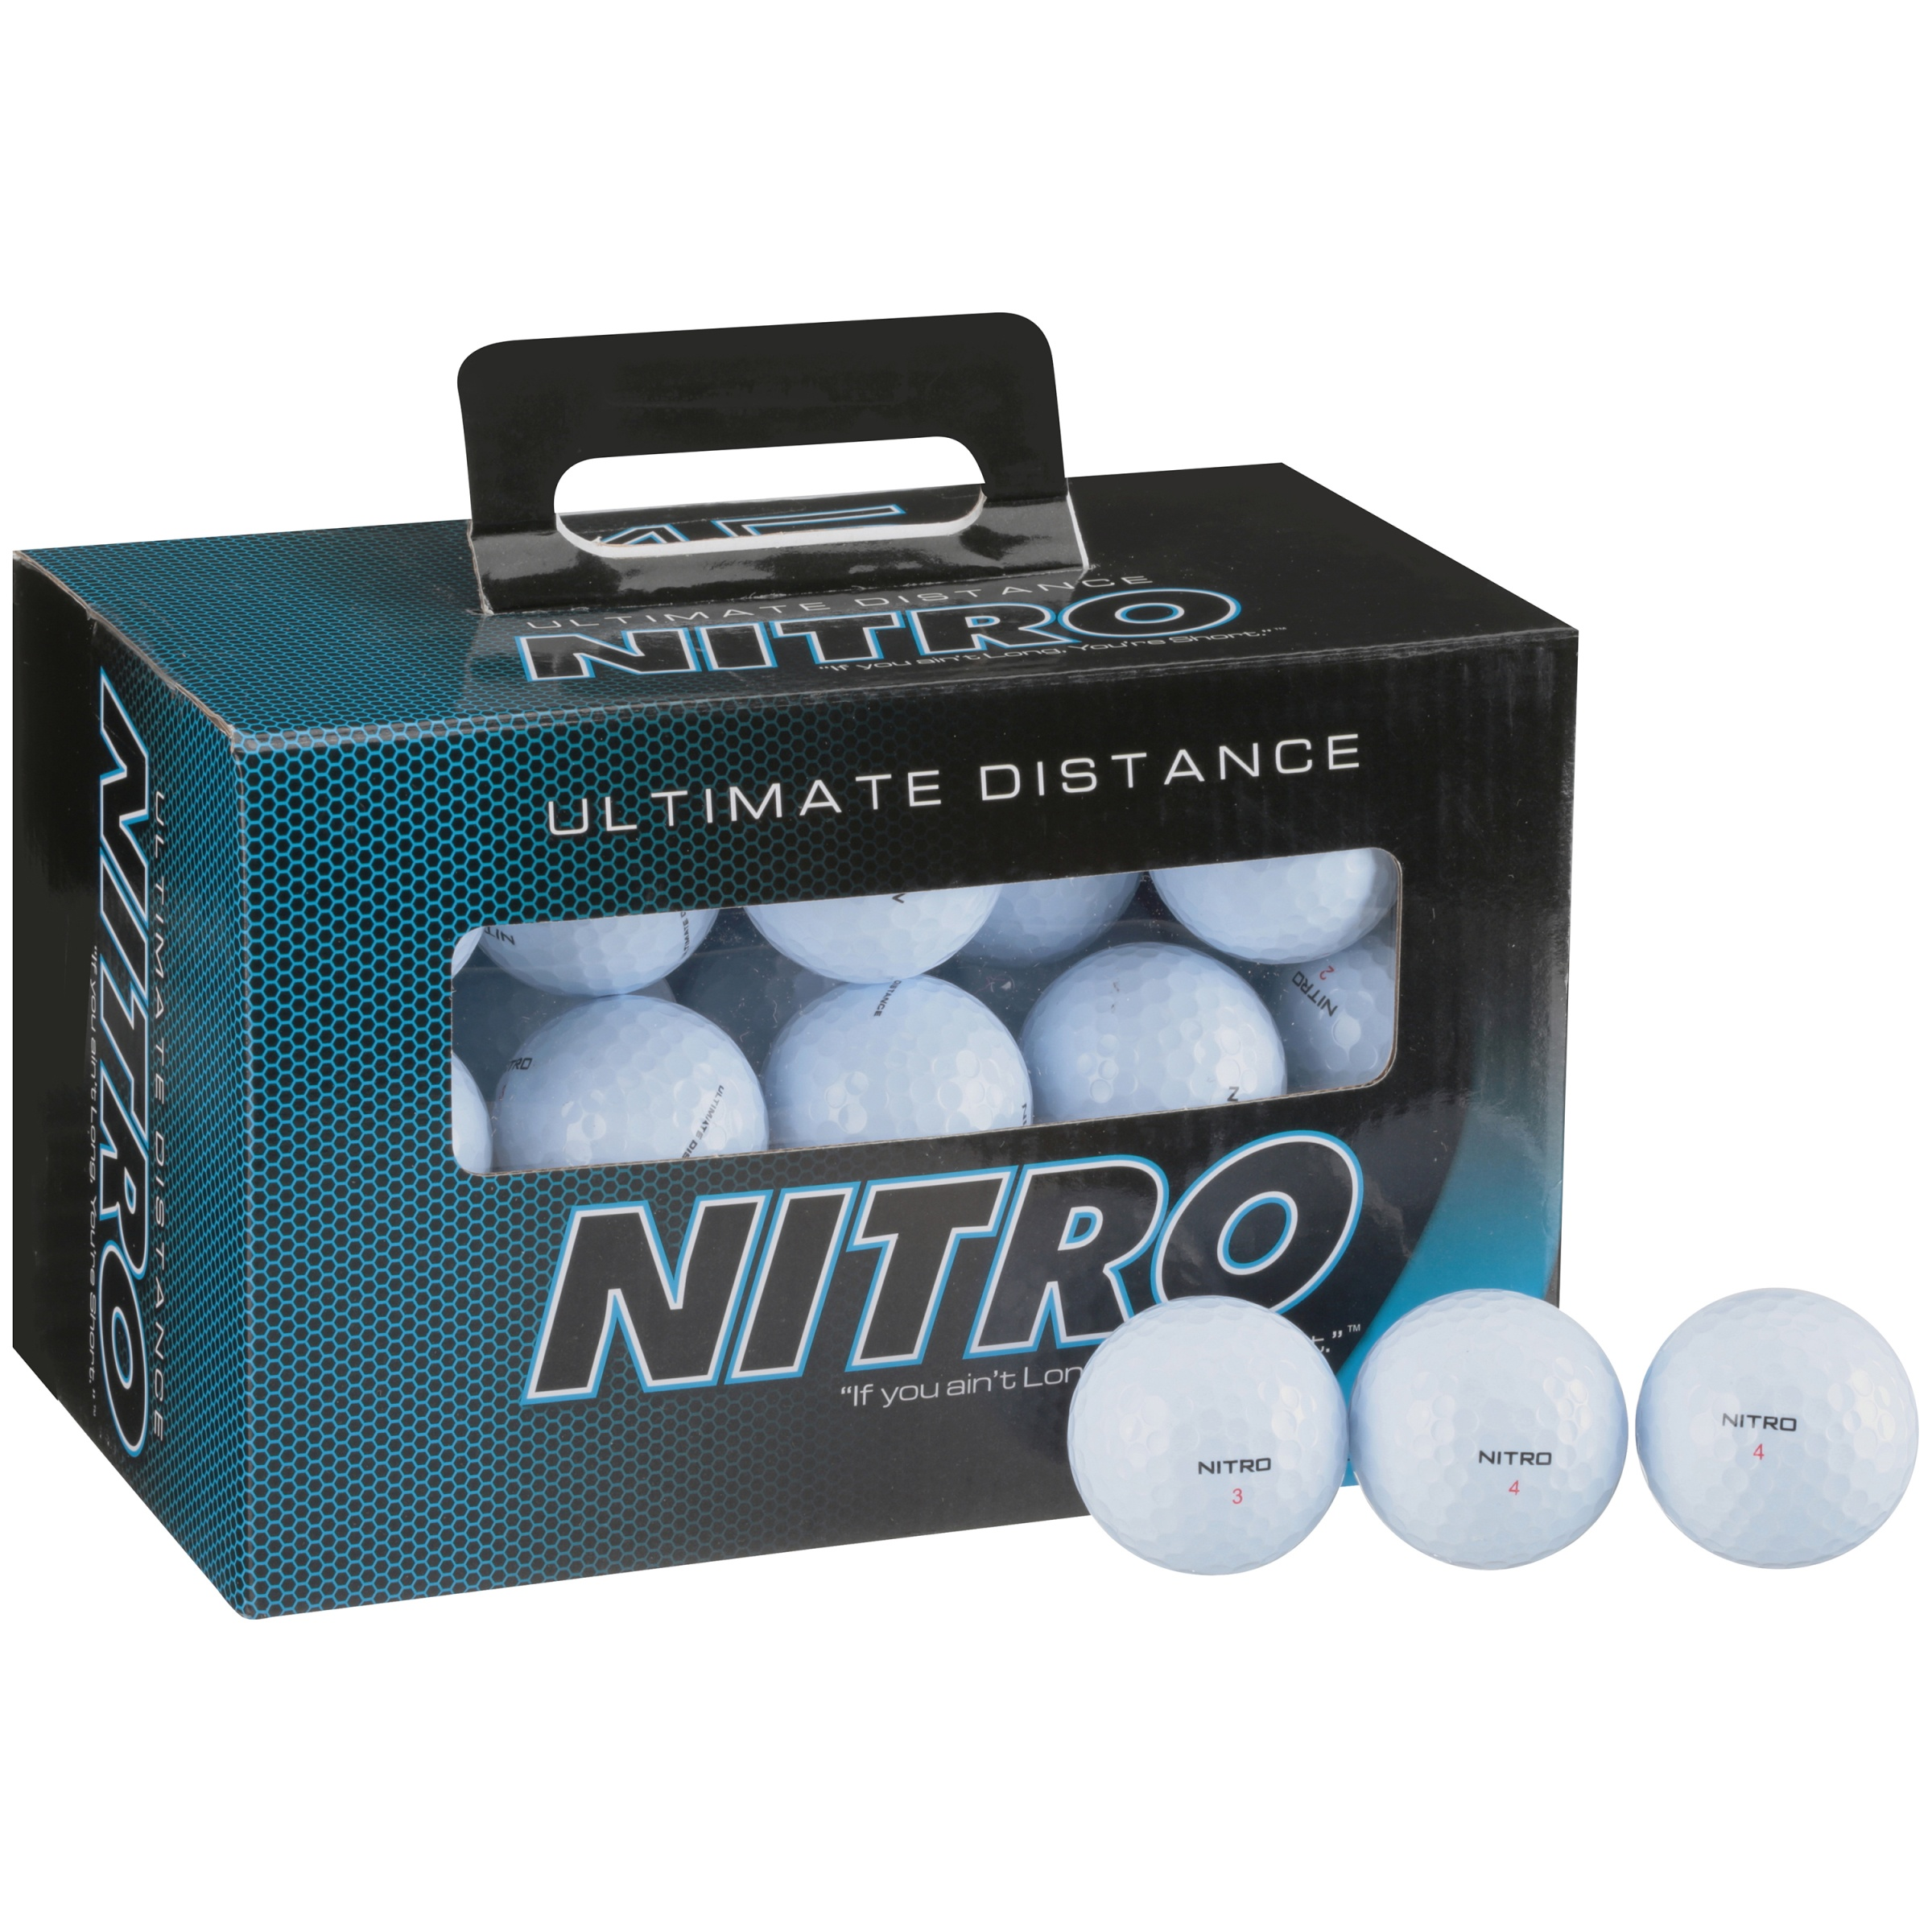 Nitro Ultimate Distance White Golf Balls 45 ct Box by Nitro Golf LLC